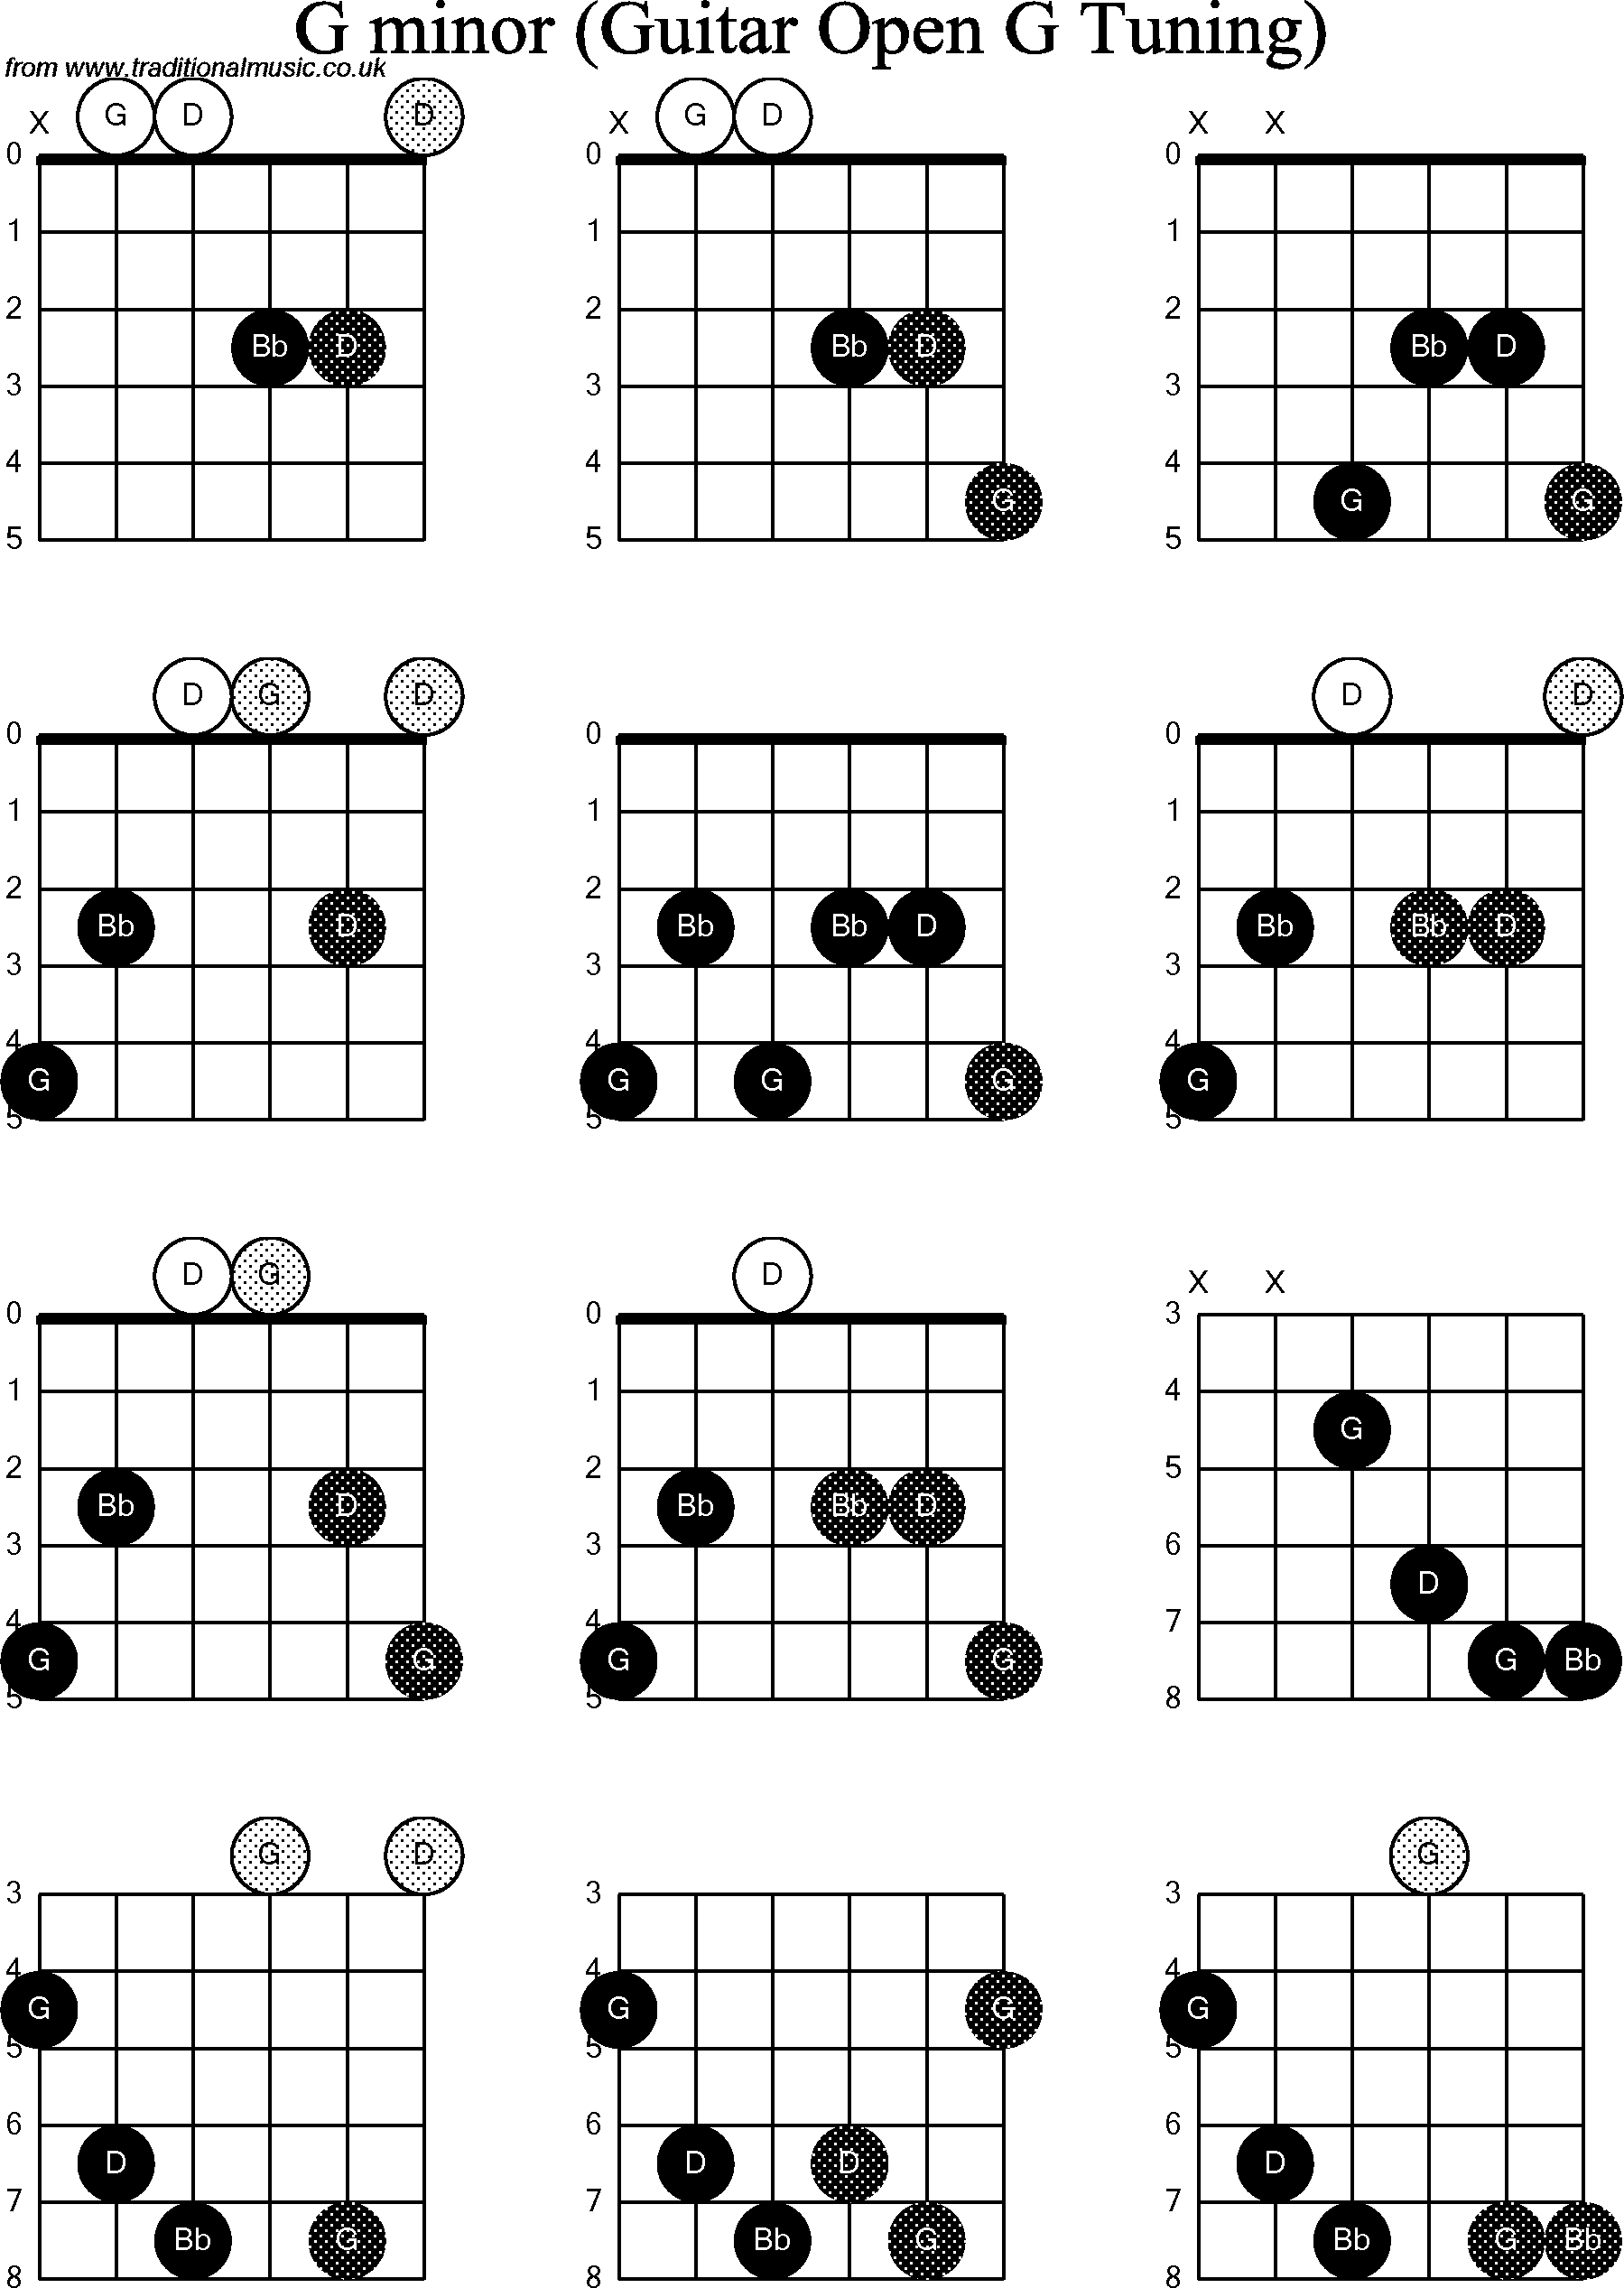 Chord Diagrams For Dobro G Minor